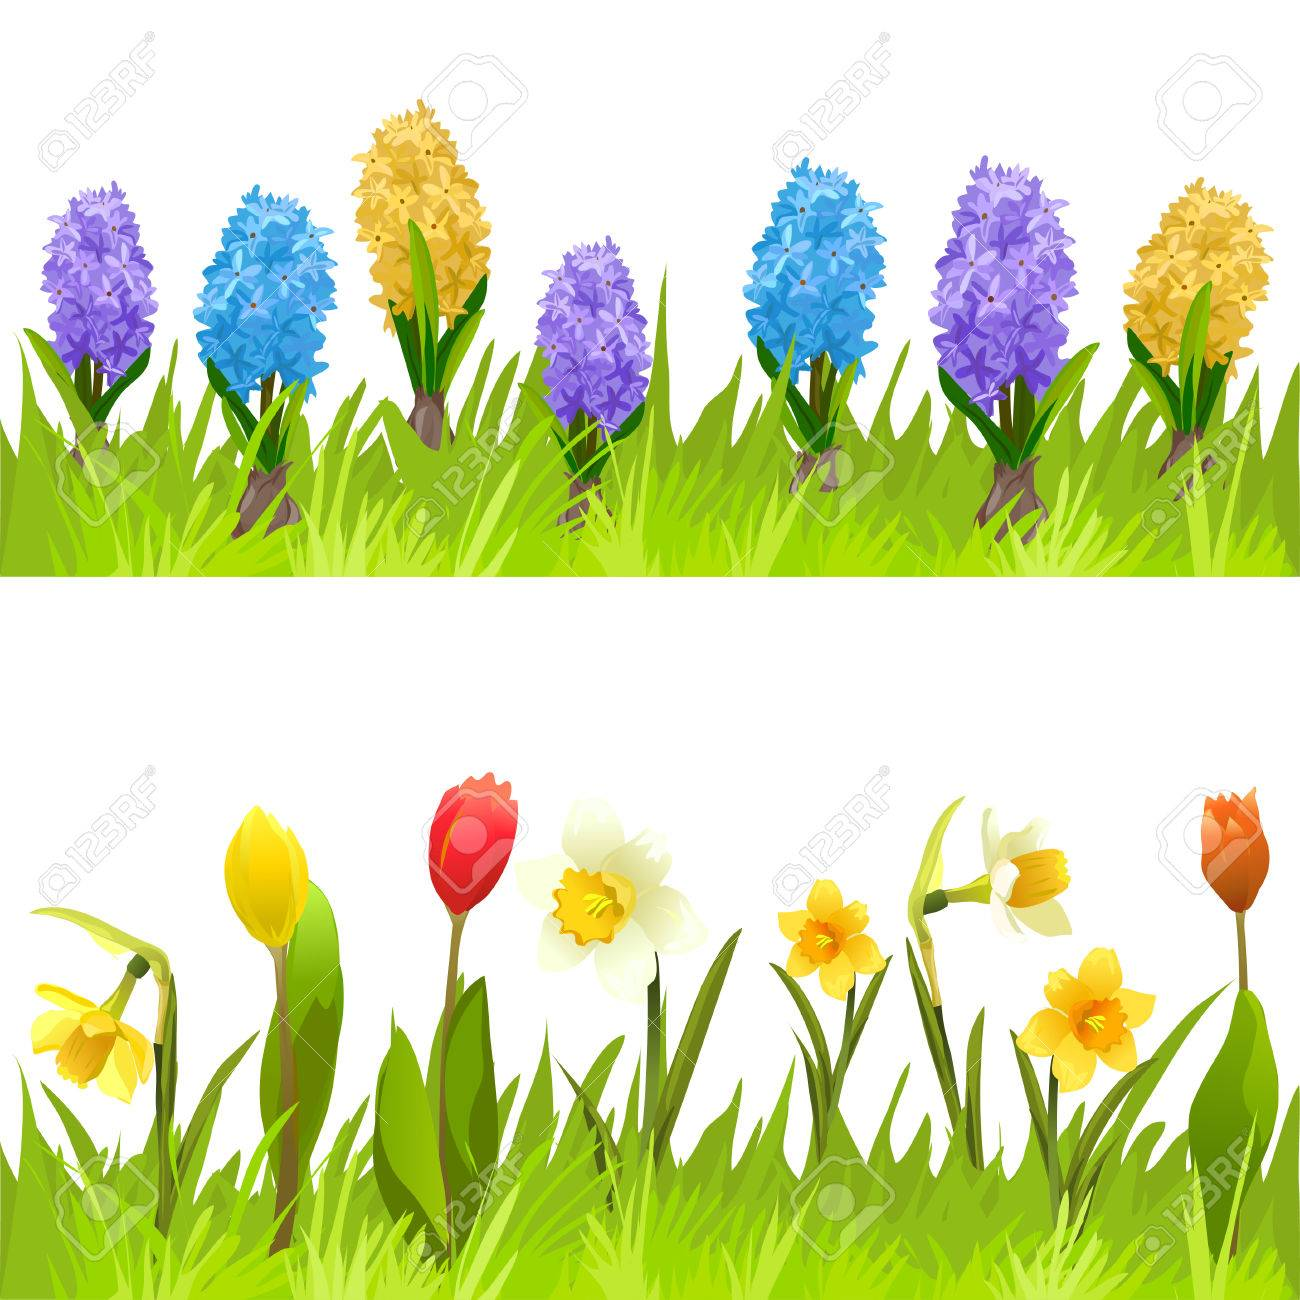 banners with spring flowers tulips daffodils and hyacinths rh 123rf com Spring Flowers and Butterflies Transparent Spring Flowers